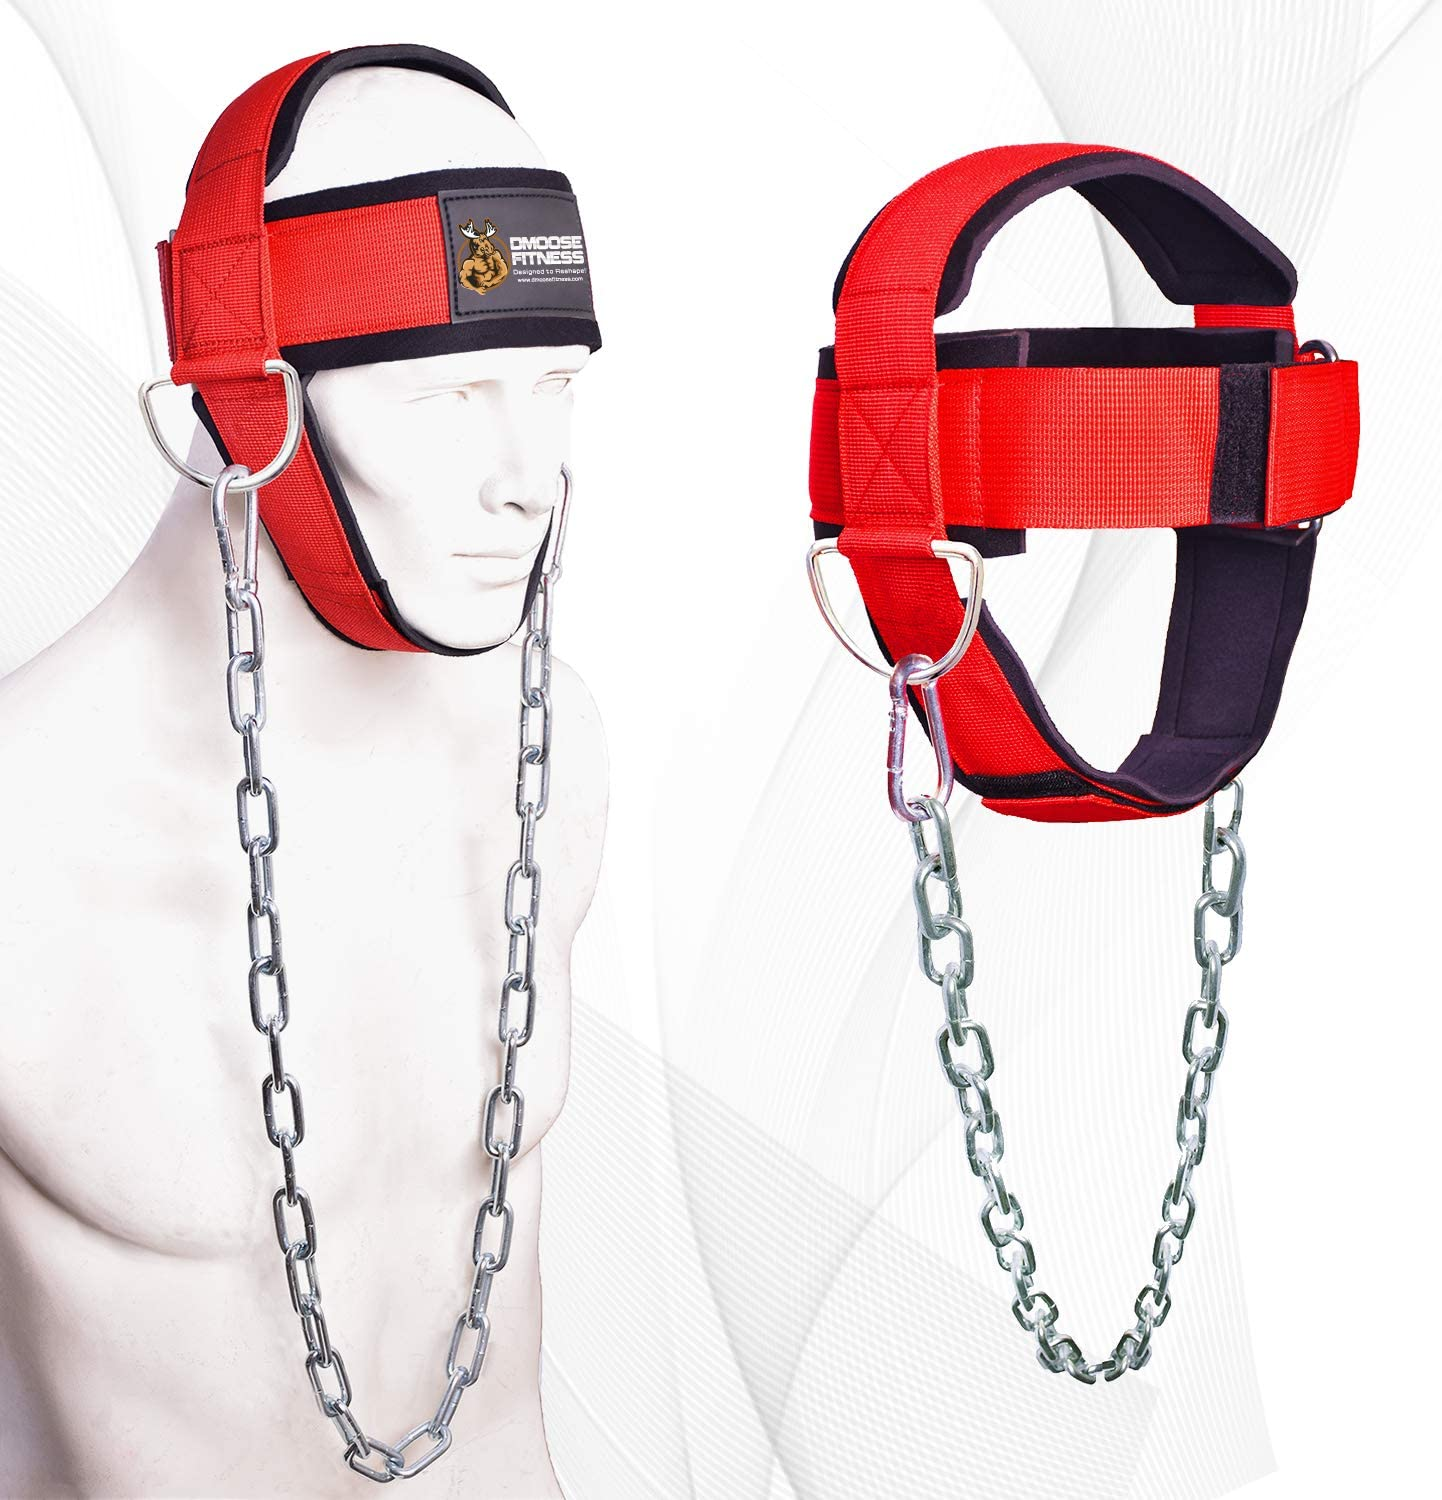 DMoose Fitness Neck Harness for Weight Lifting, Resistance Training, or Injury Recovery with Long Steel Chain, Improve Muscle Strength : Sports & Outdoors